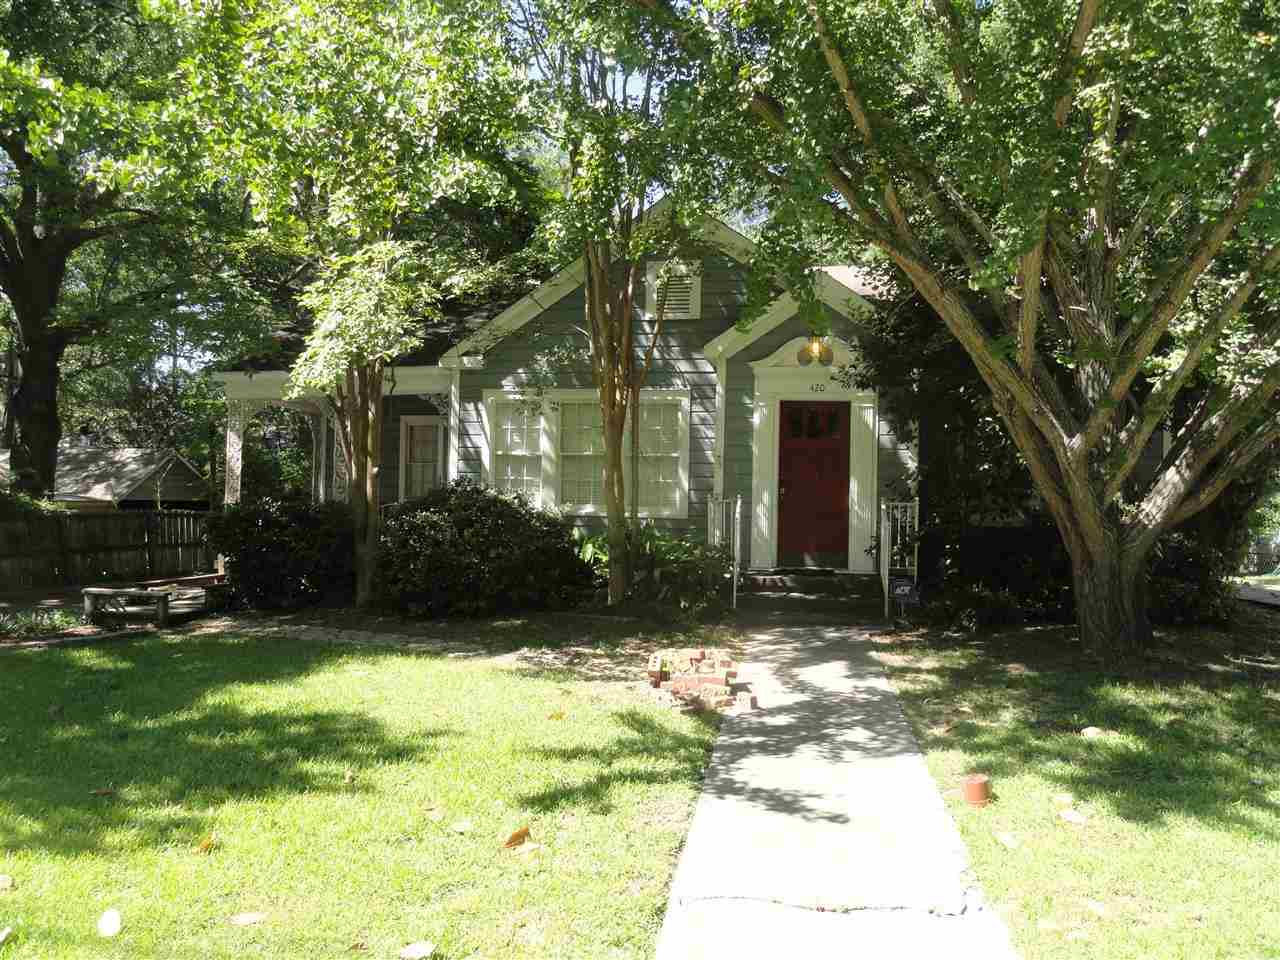 Rental Homes for Rent, ListingId:32298428, location: 420 E. MAYES ST Jackson 39206